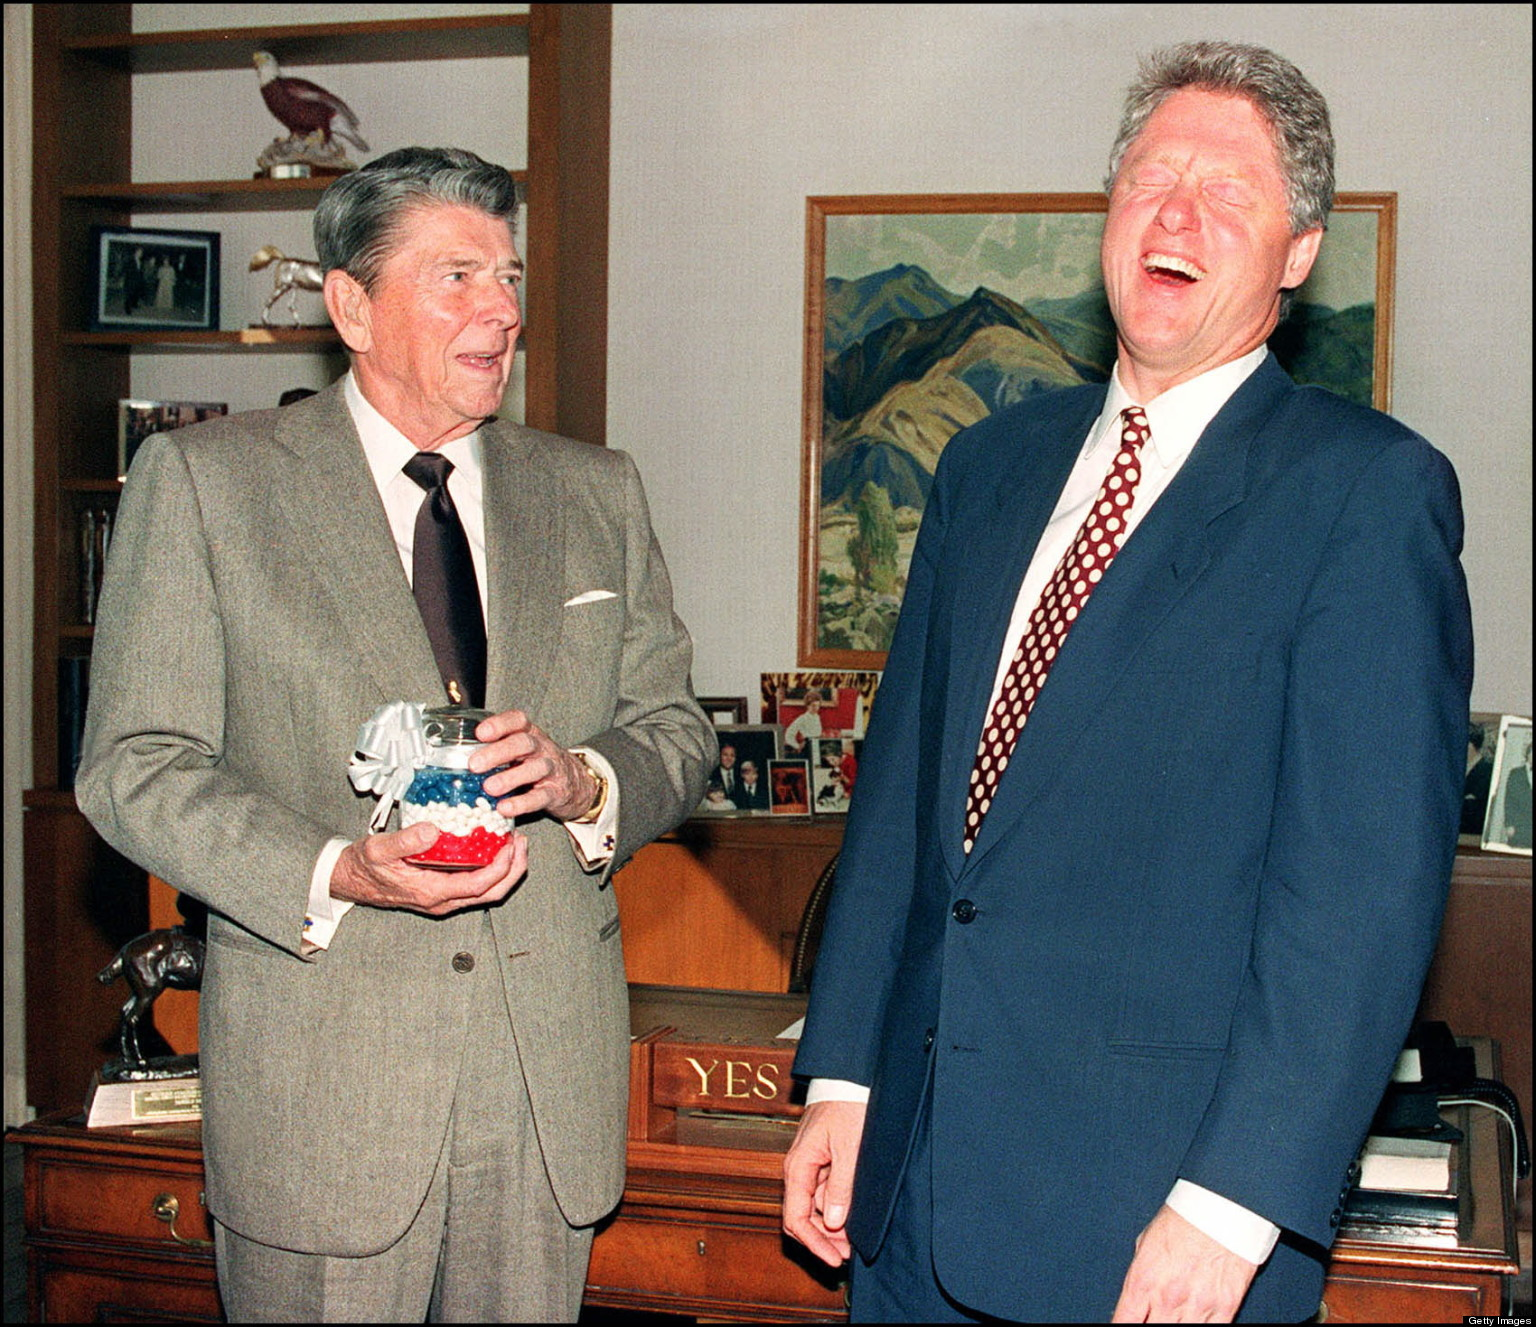 compare and contrasting bill clinton to ronald reagan Comparing obama and reagan's economic records  barack obama or ronald reagan  necessitating the deficit-reduction bills passed by george hw bush and bill clinton obama's major .